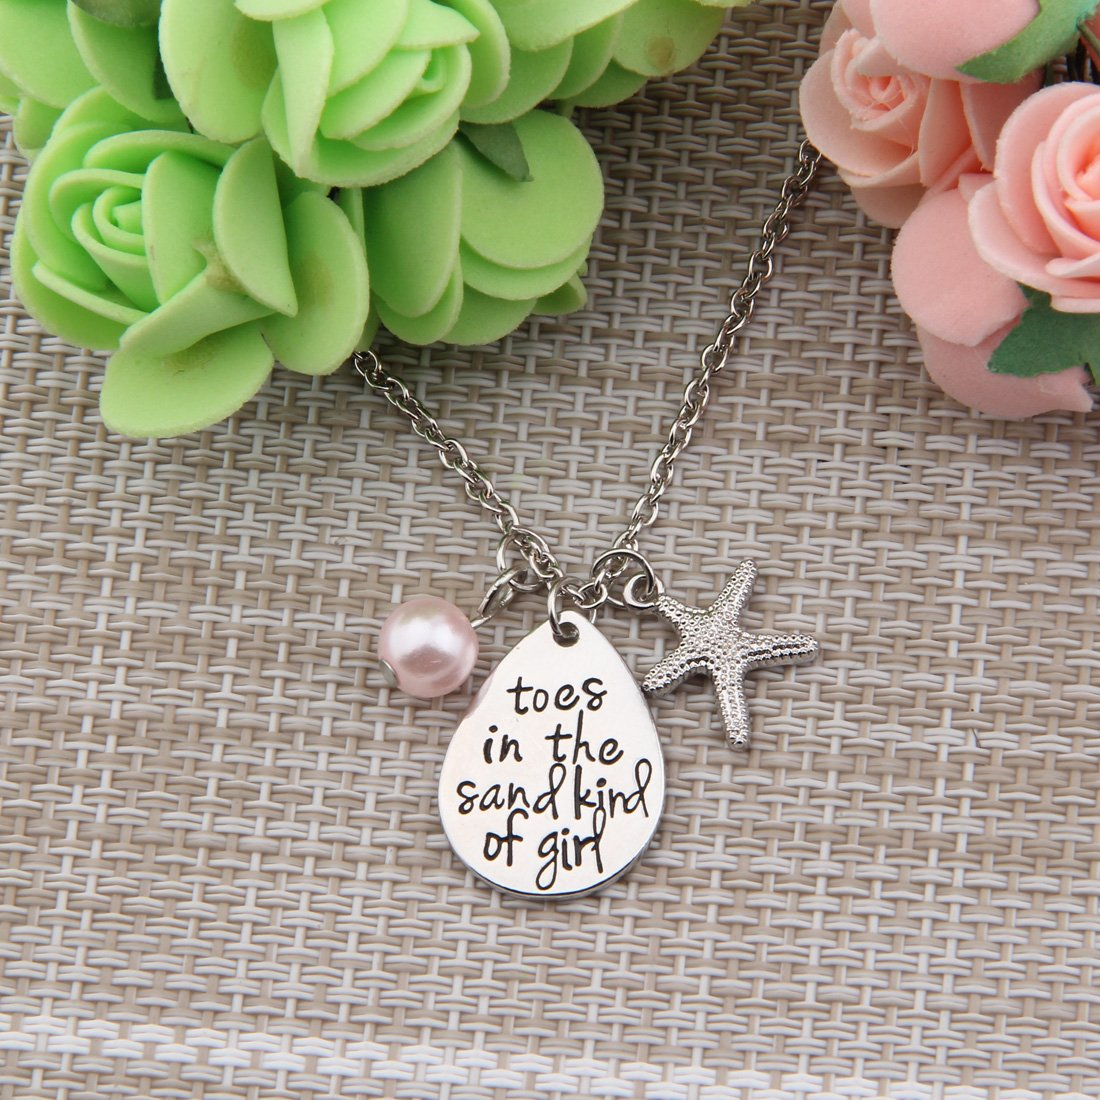 ENSIANTH Toes In The Sand Kind of Girl Engraved Charms Necklace Beach Jewelry with Starfish (waterdrop necklace) by ENSIANTH (Image #4)